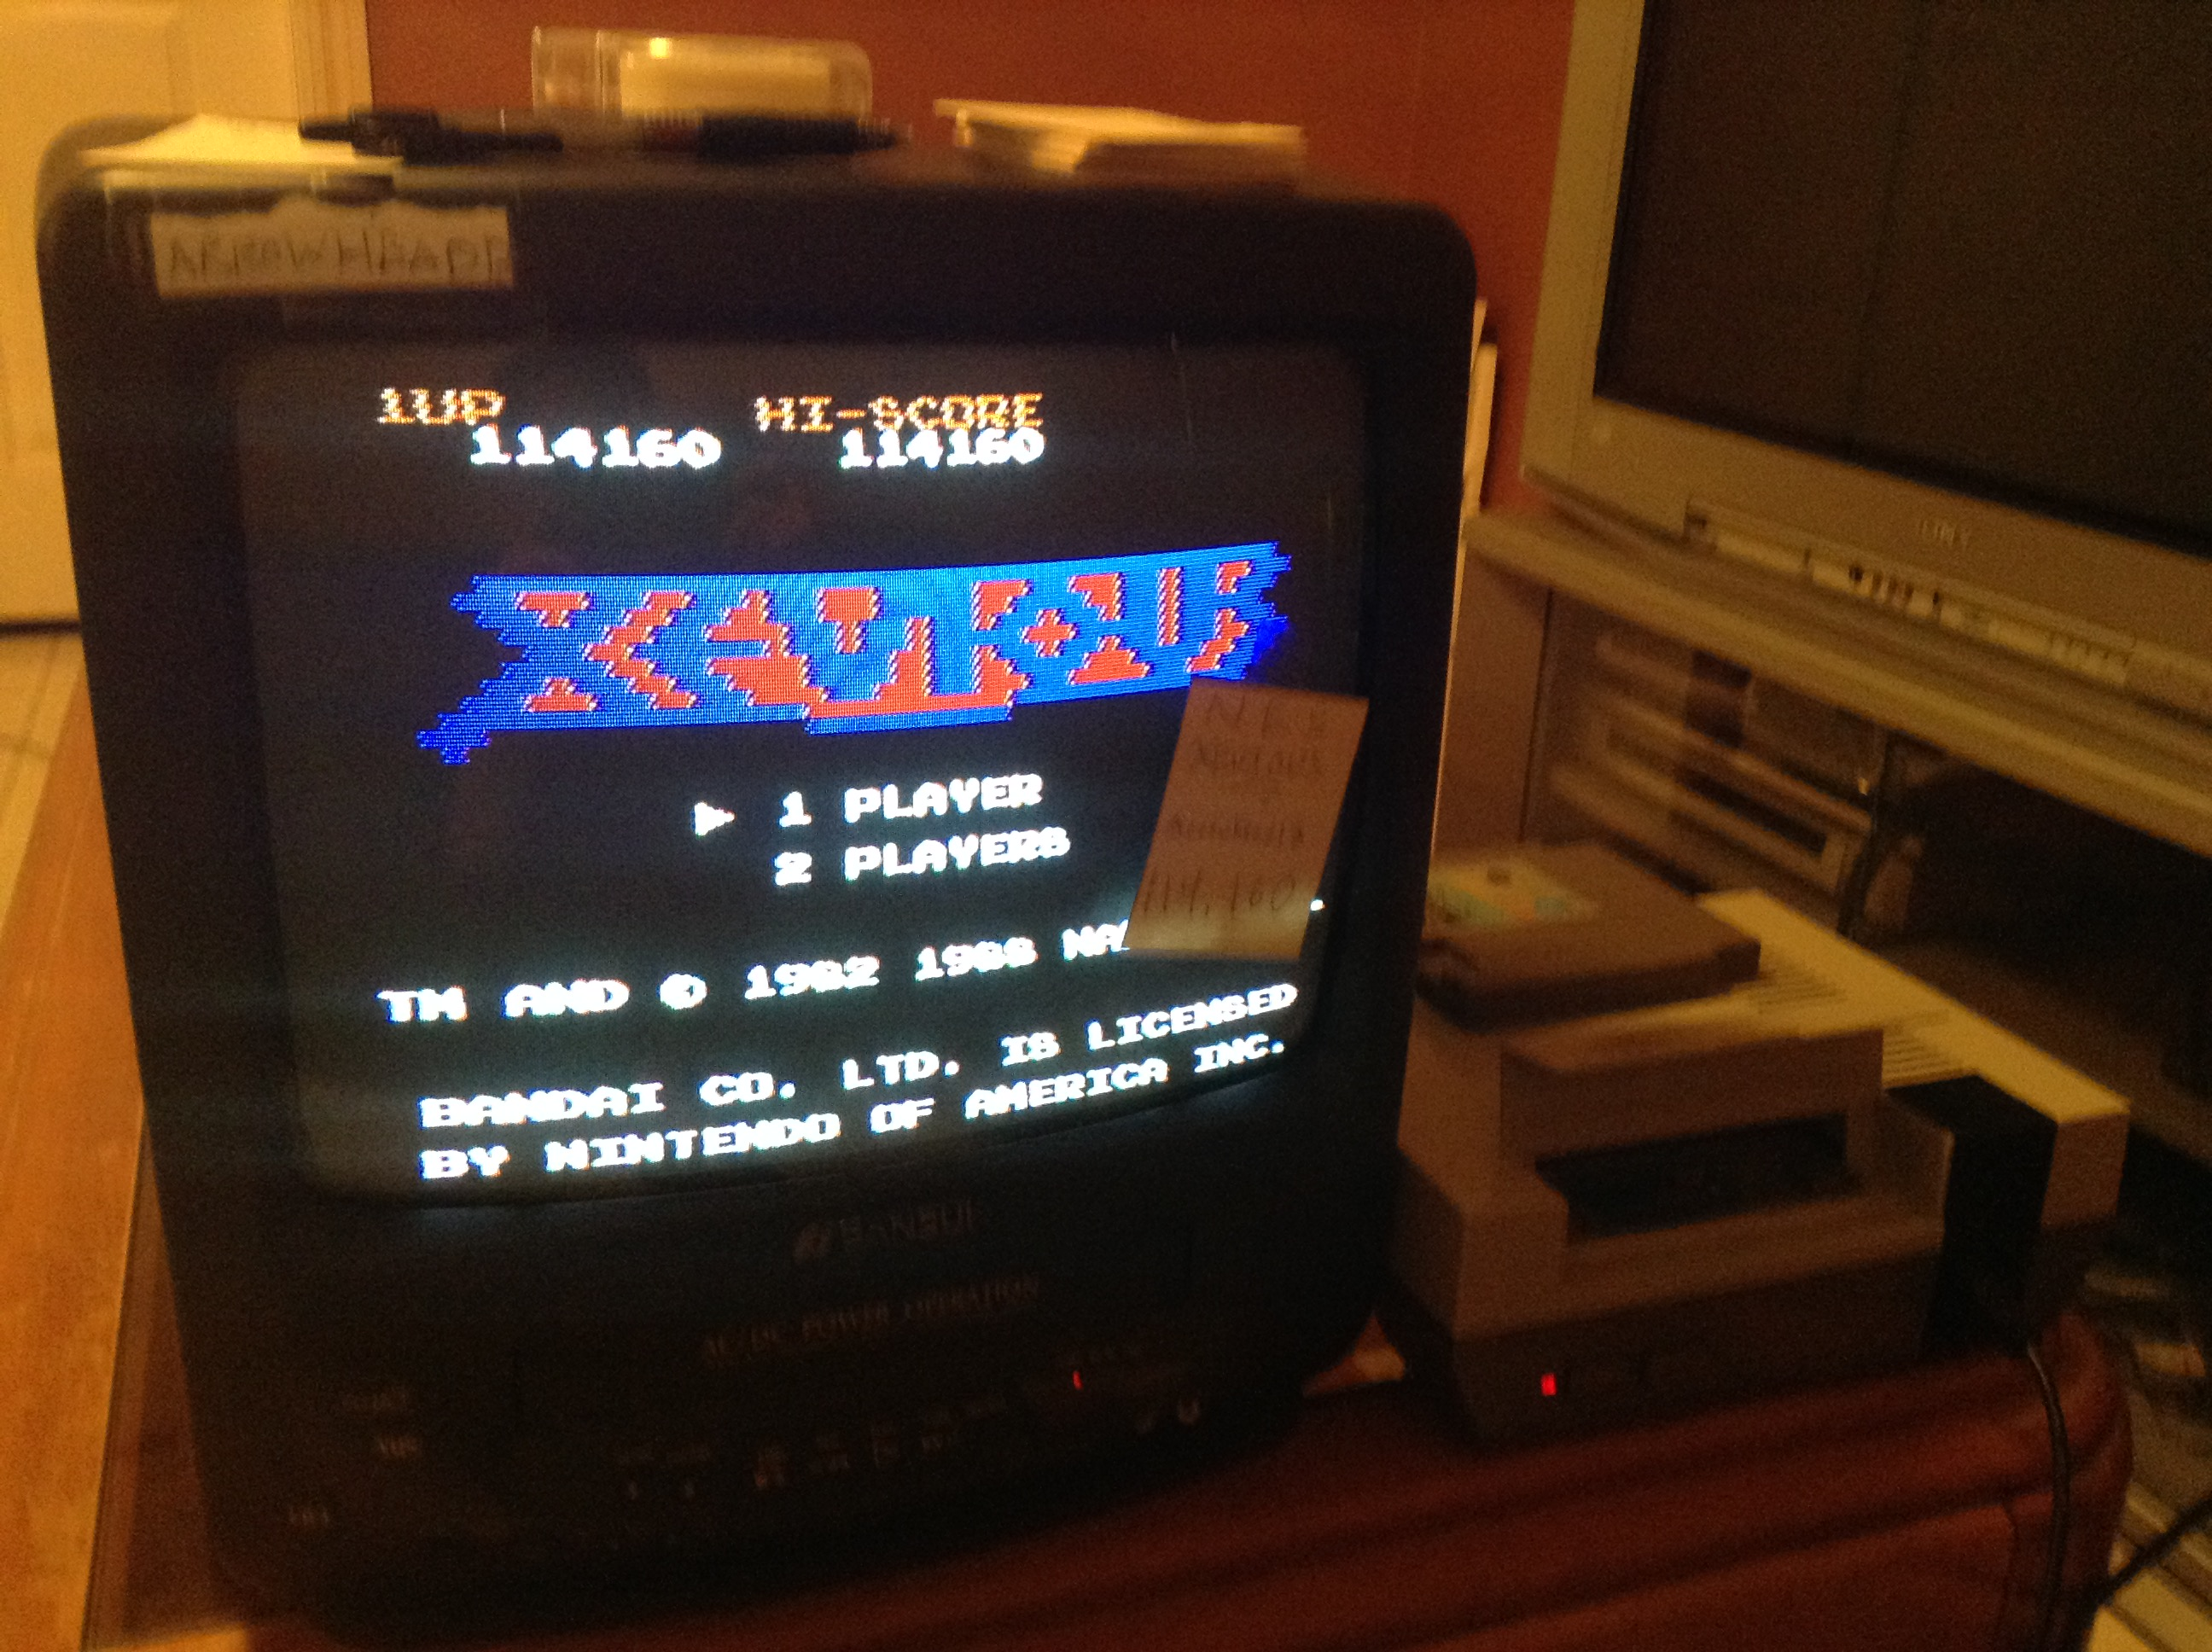 Xevious 114,160 points